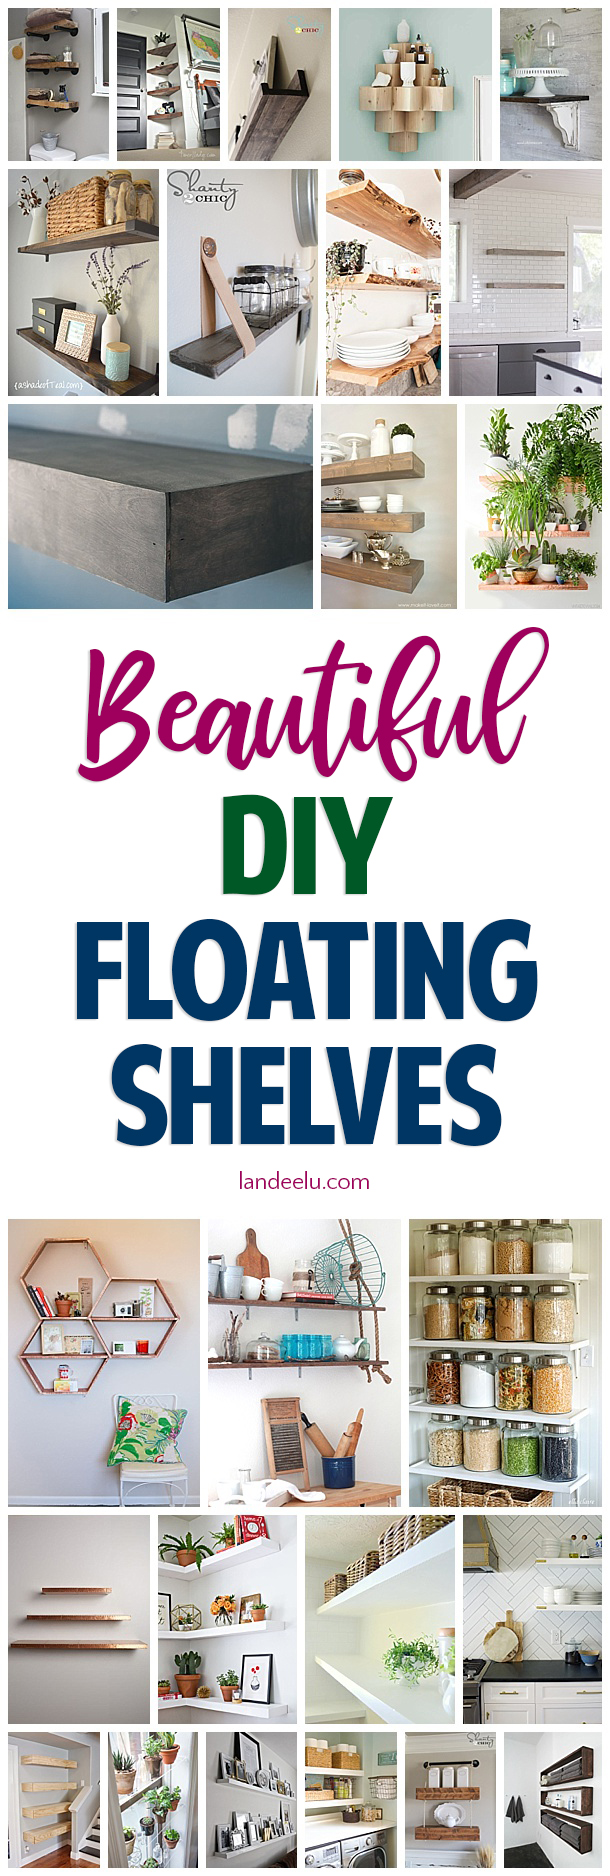 Check out all of these awesome DIY floating shelves tutorials! A fantastic and inexpensive project with high impact! #floatingshelves #diy #DIYproject #diyfloatingshelves #openshelving #diyhomedecor